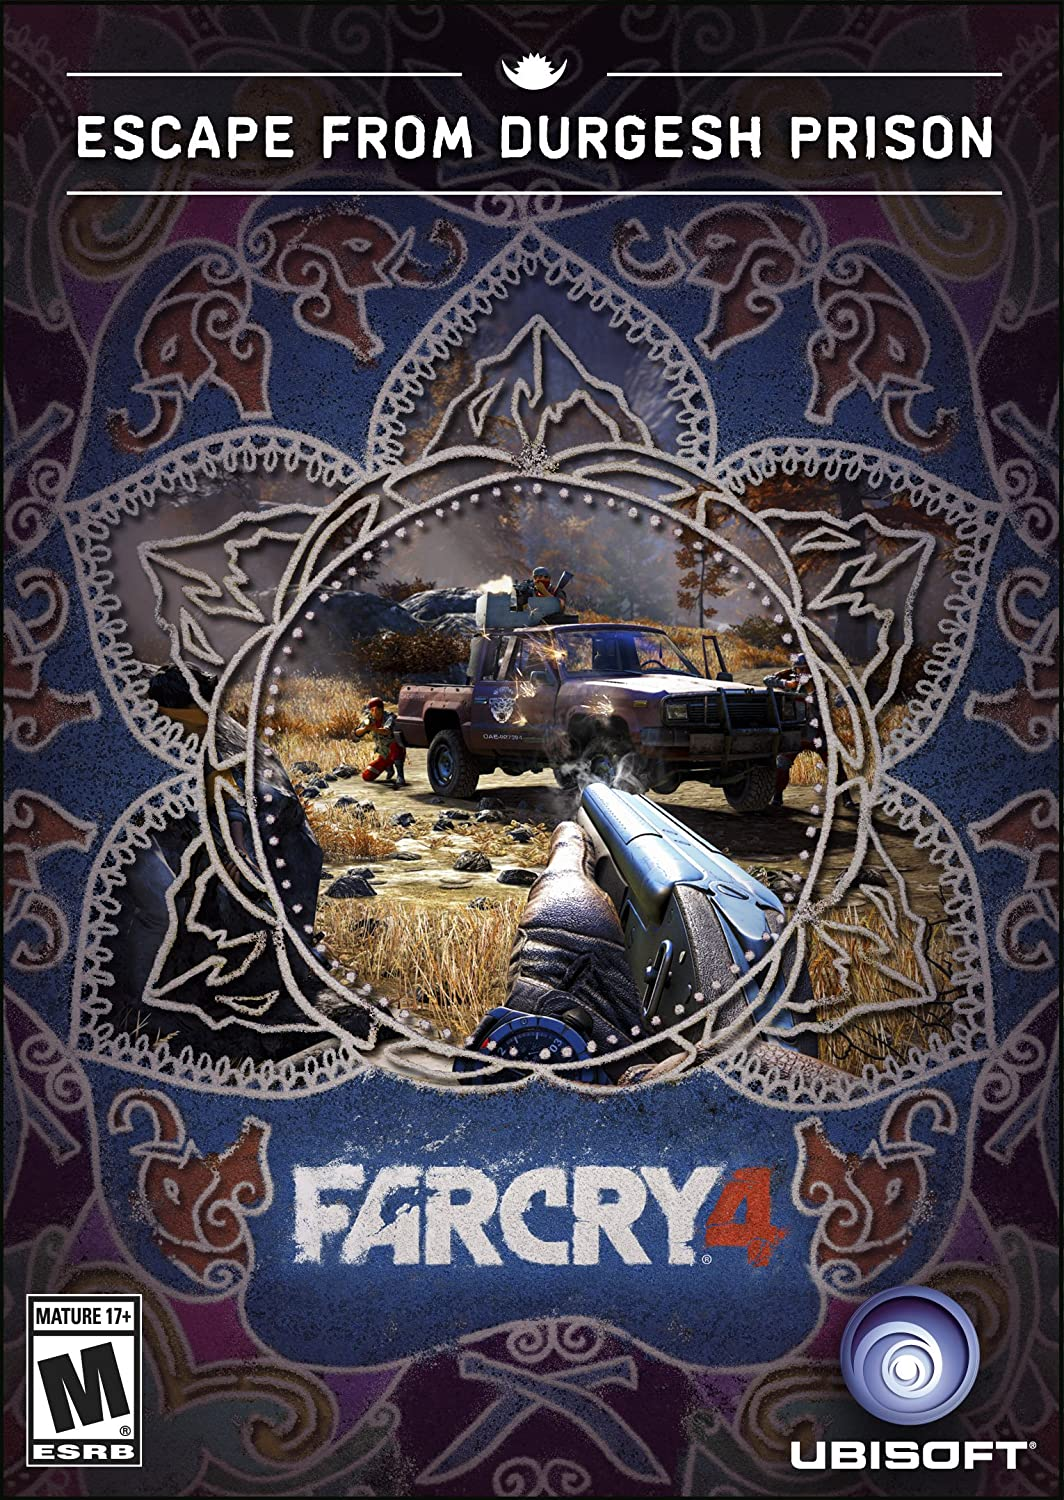 Far Cry 4 - Escape Ranking TOP10 From Prison Code Online Las Vegas Mall Durgesh Game